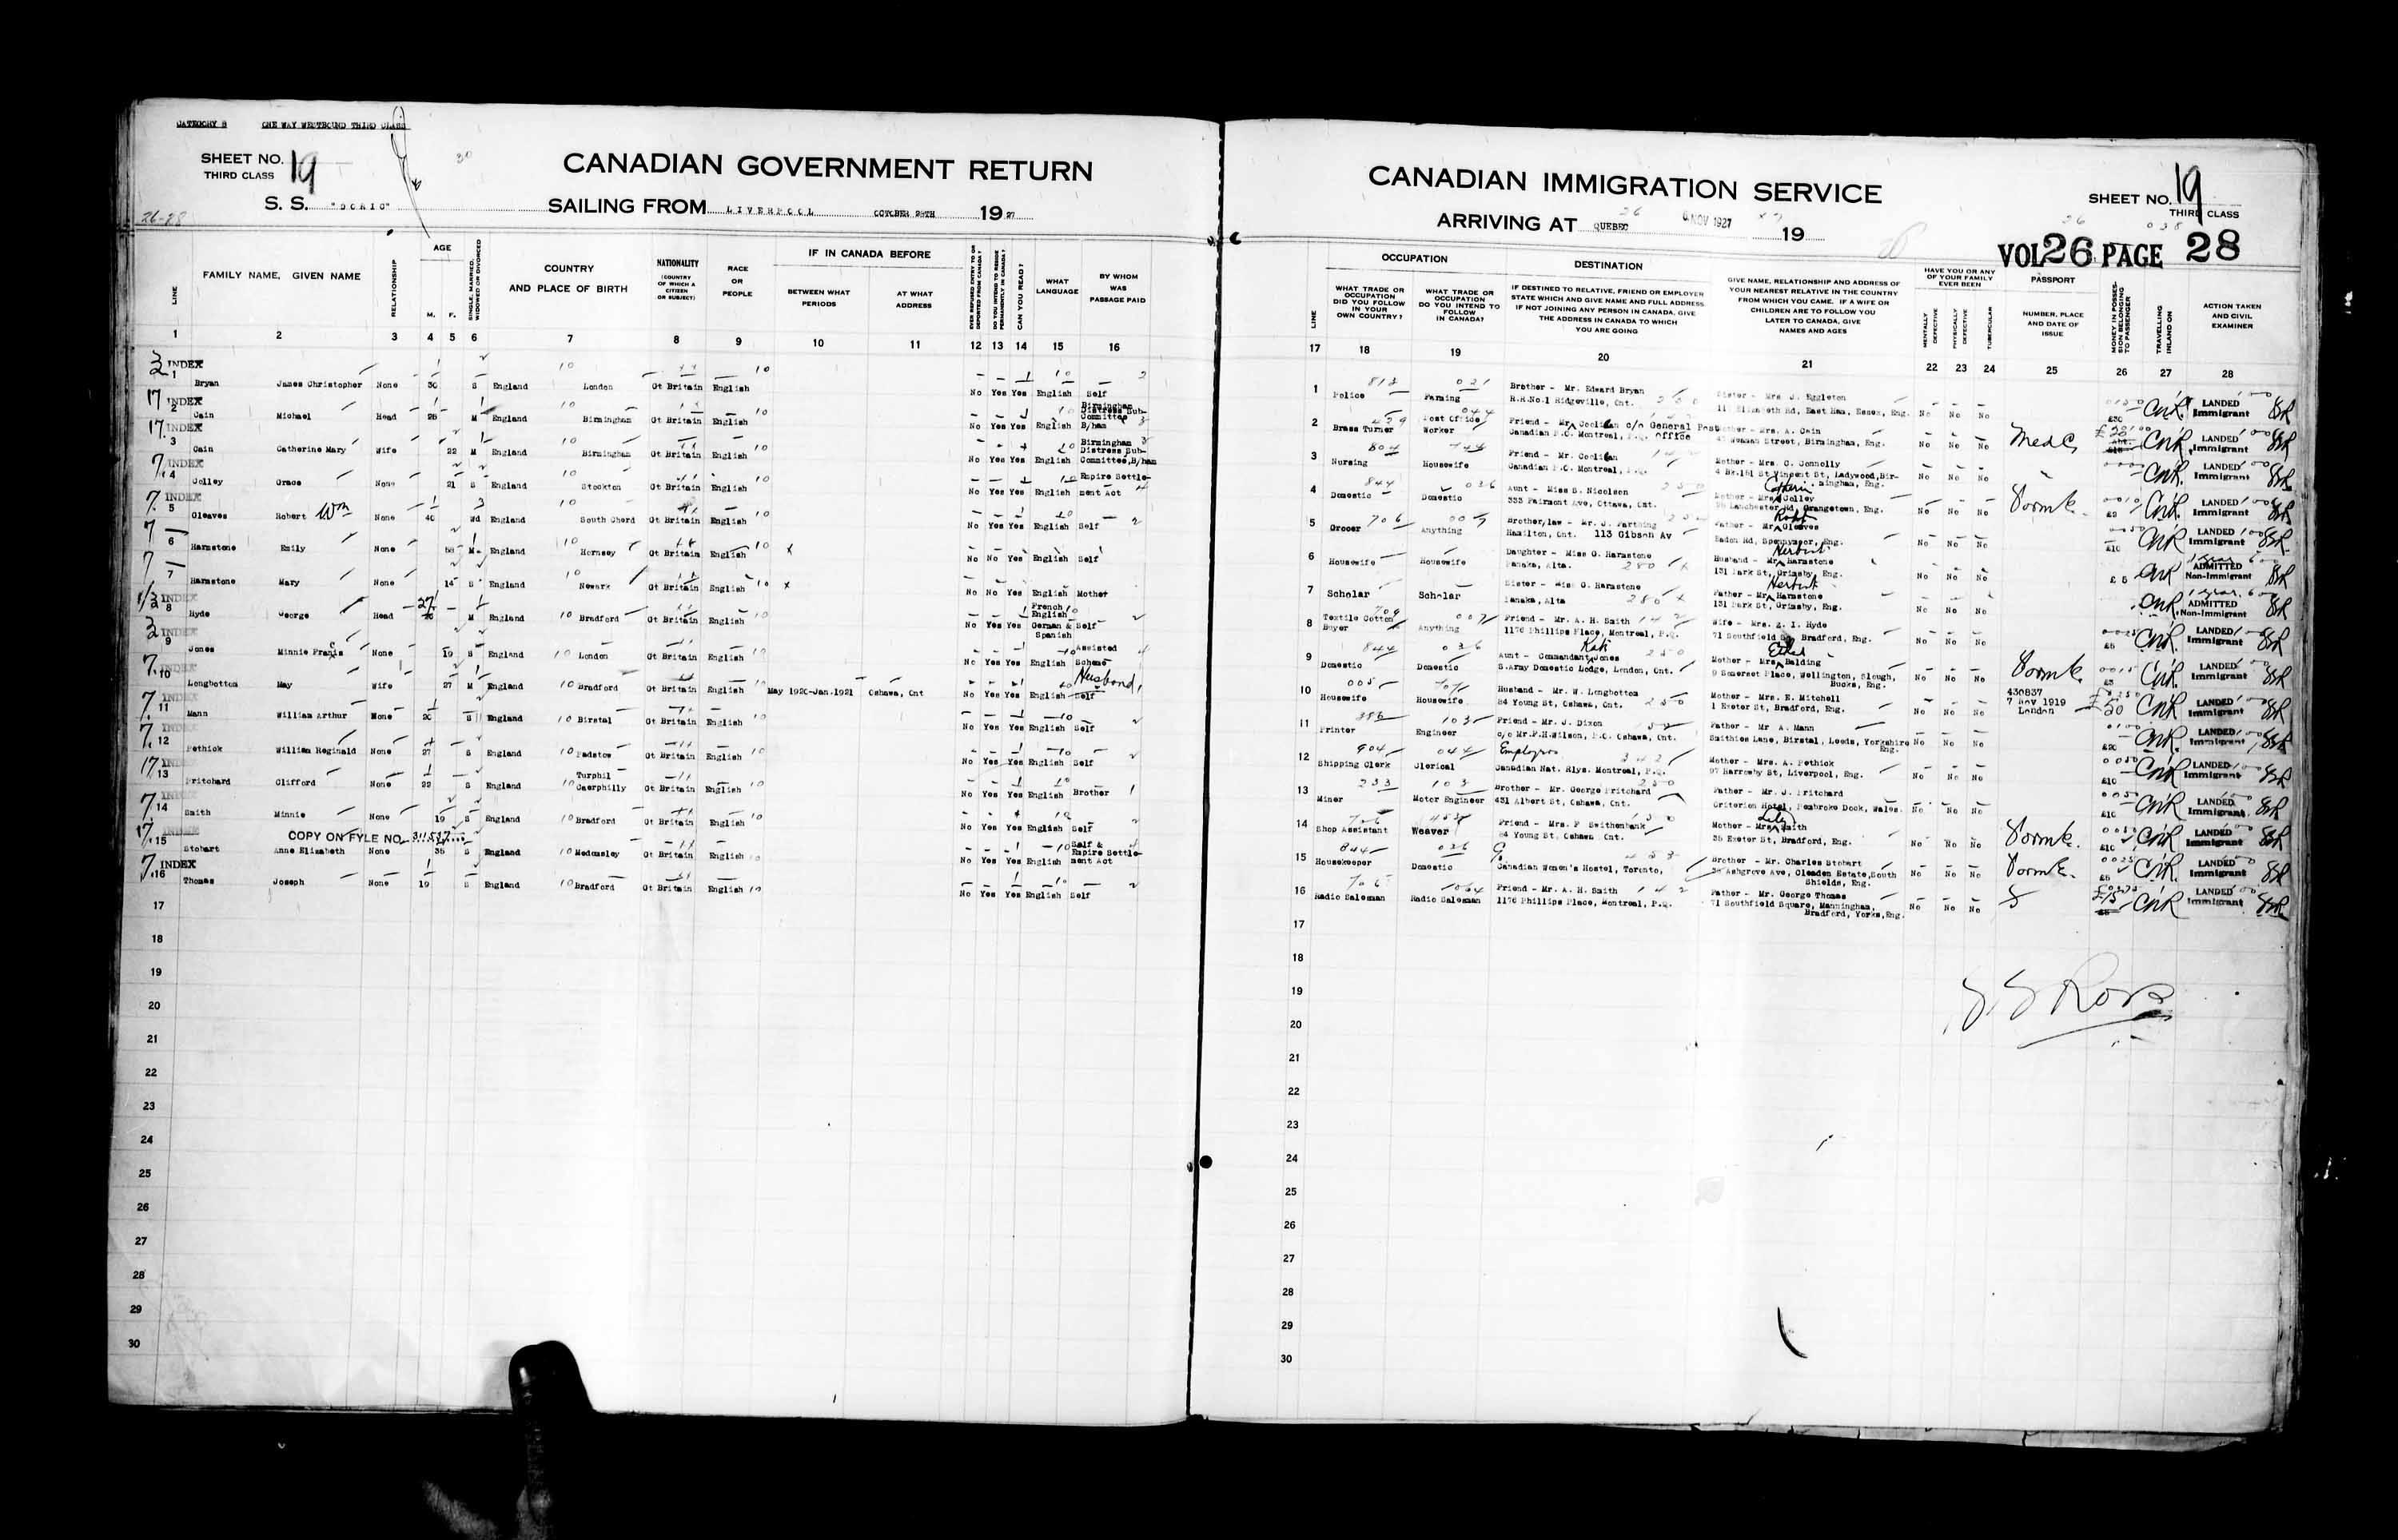 Title: Passenger Lists: Quebec City (1925-1935) - Mikan Number: 134839 - Microform: t-14739